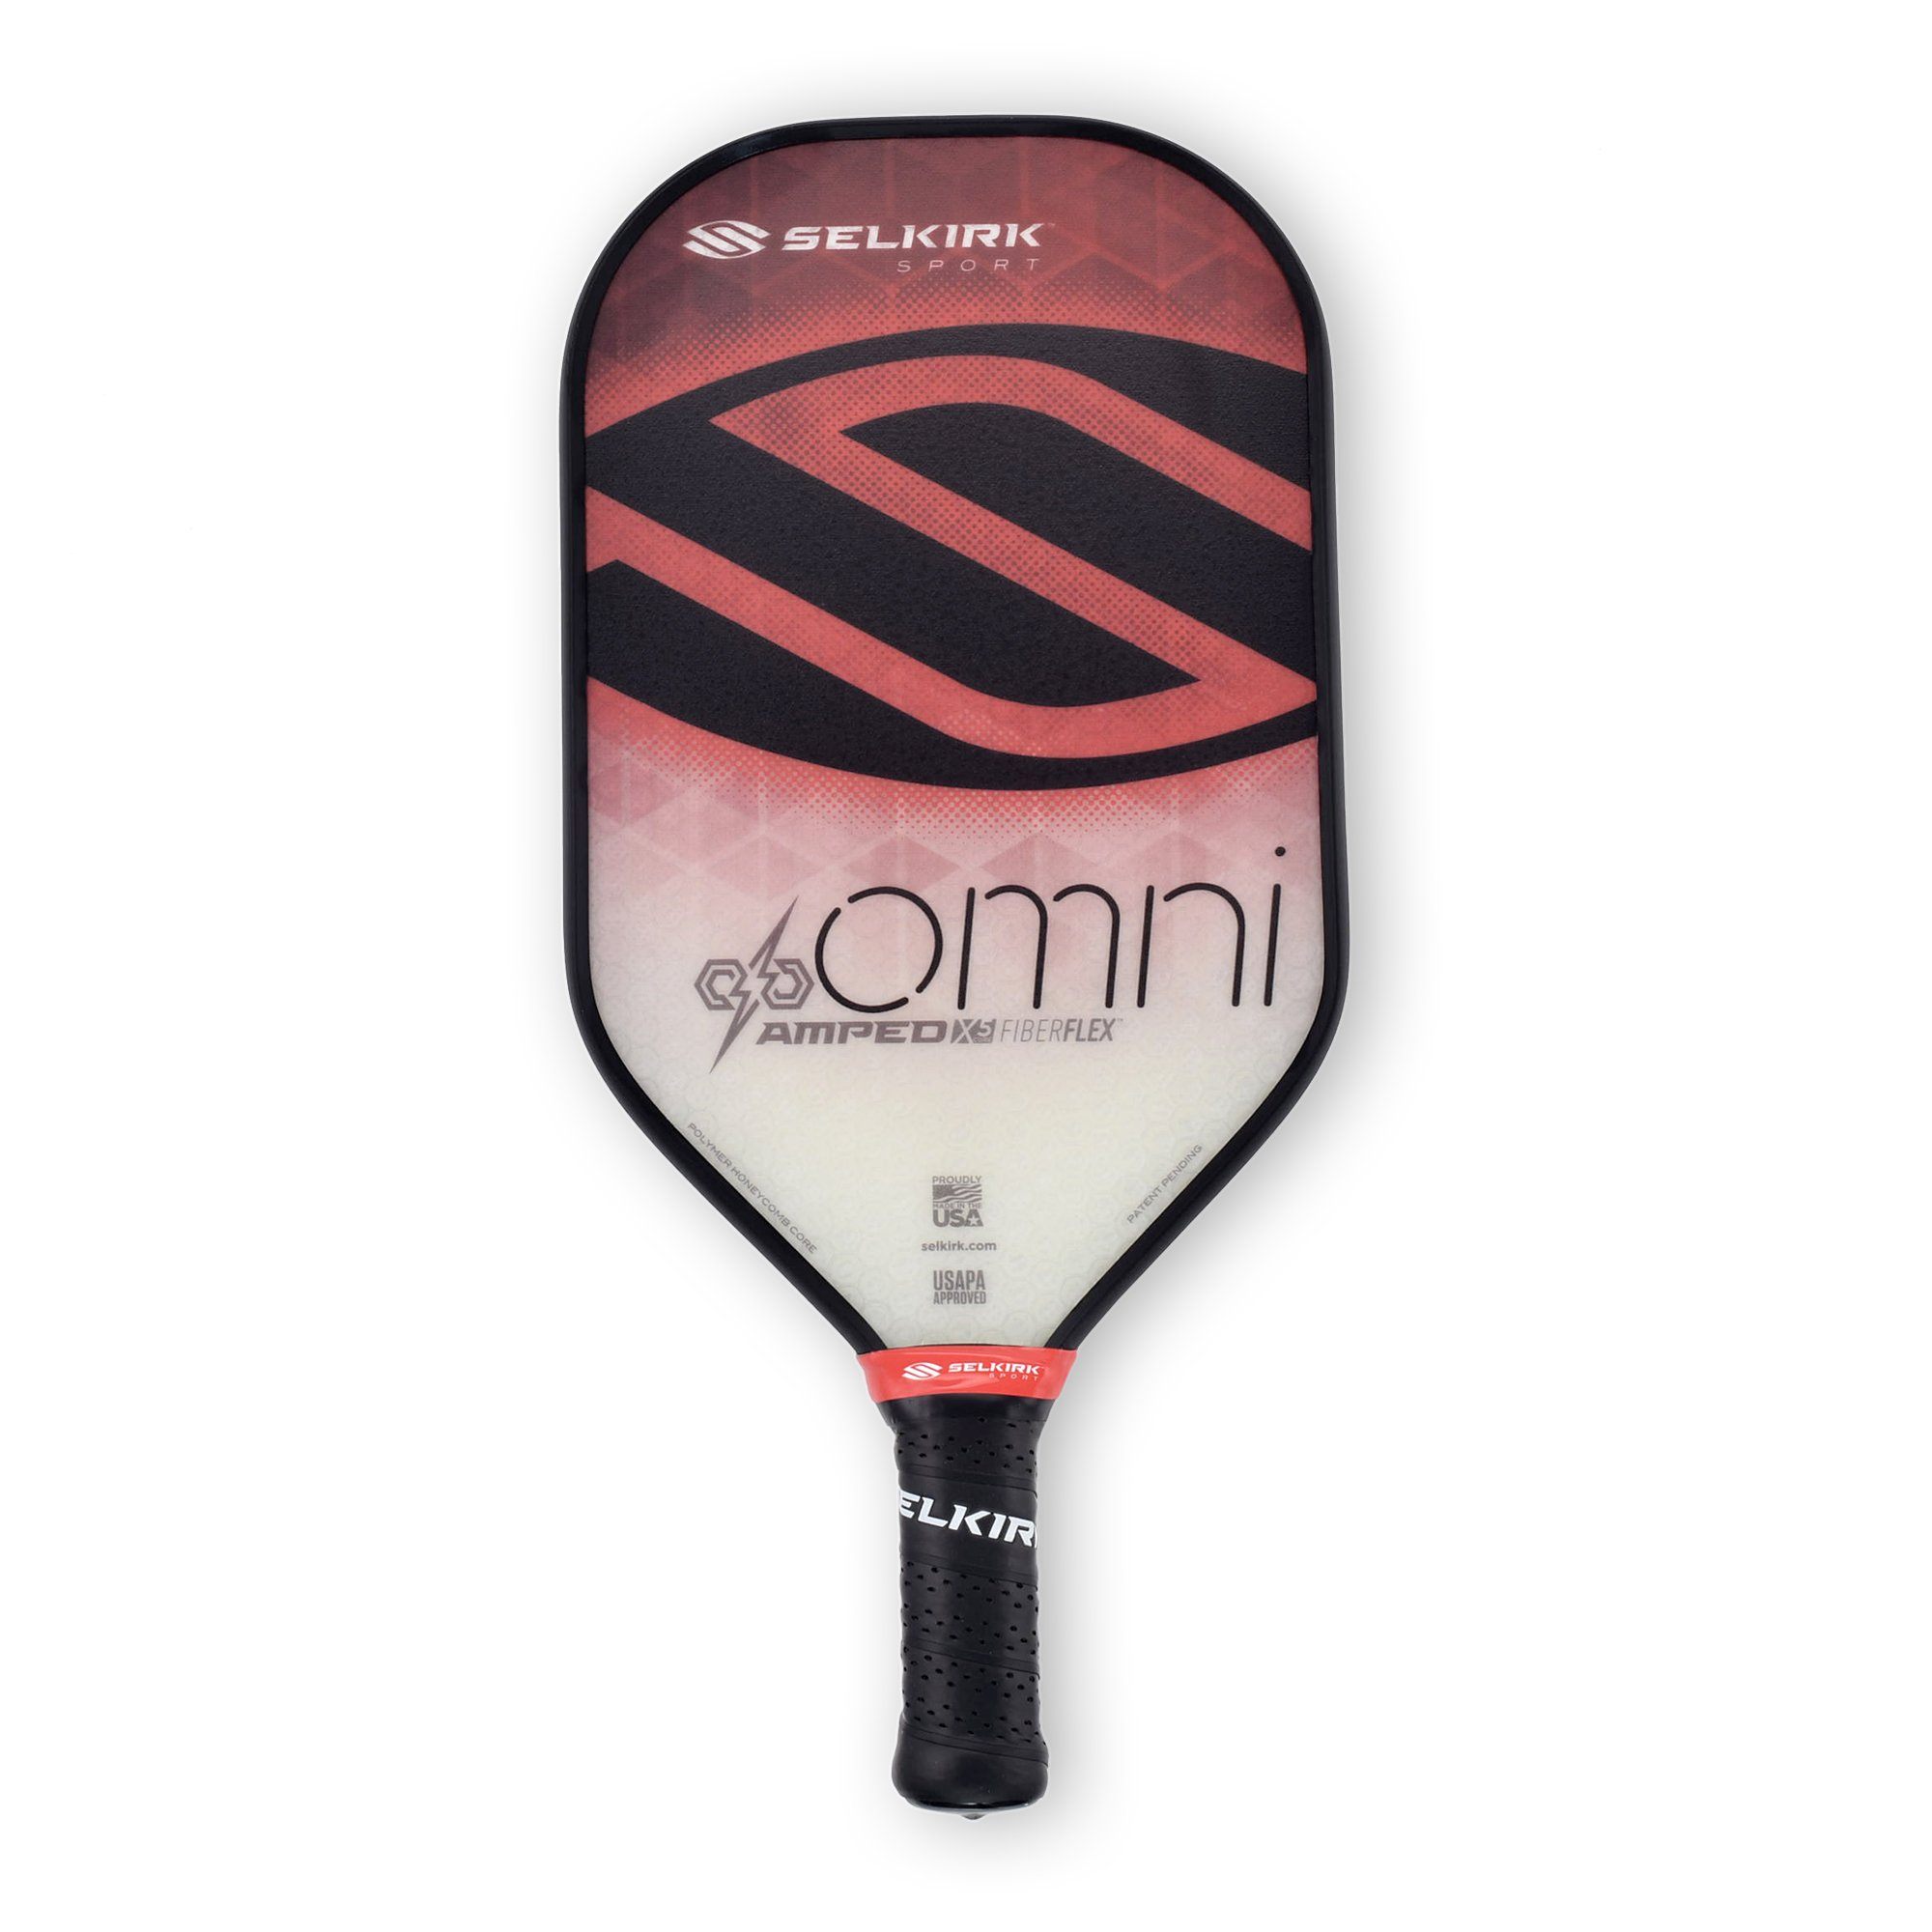 Selkirk Amped Pickleball Paddle - USAPA Approved - X5 Polypropylene Core - FiberFlex Fiberglass Face - 5 Sizes: Epic, S2, Omni, Maxima, and INVIKTA (Omni Midweight - Ruby Red) by Selkirk Sport